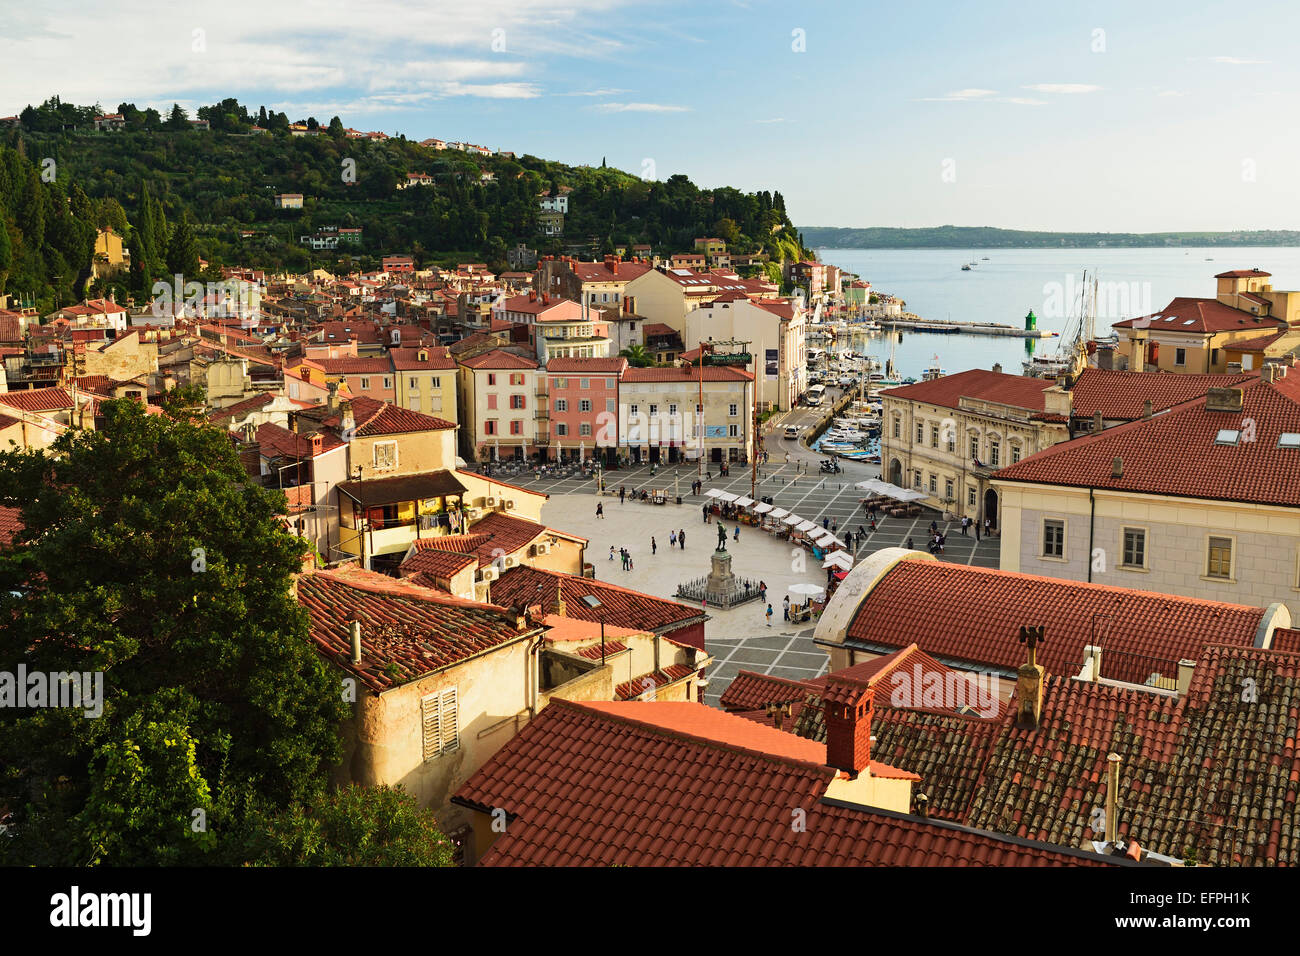 Piran, Gulf of Piran, Adriatic Sea, Slovenia, Europe - Stock Image